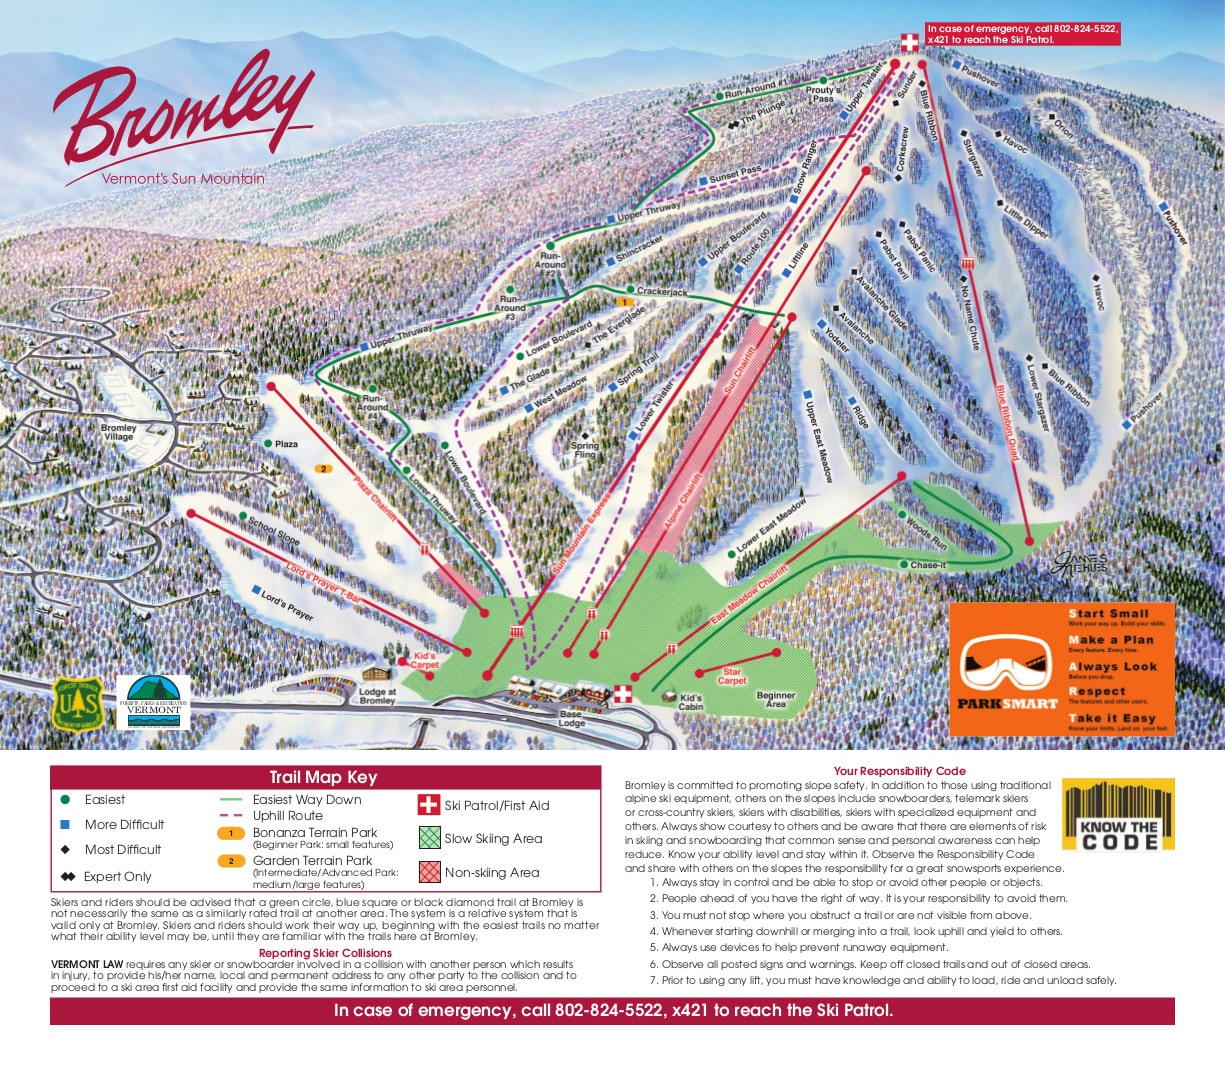 Bromley Mountain Piste / Trail Map